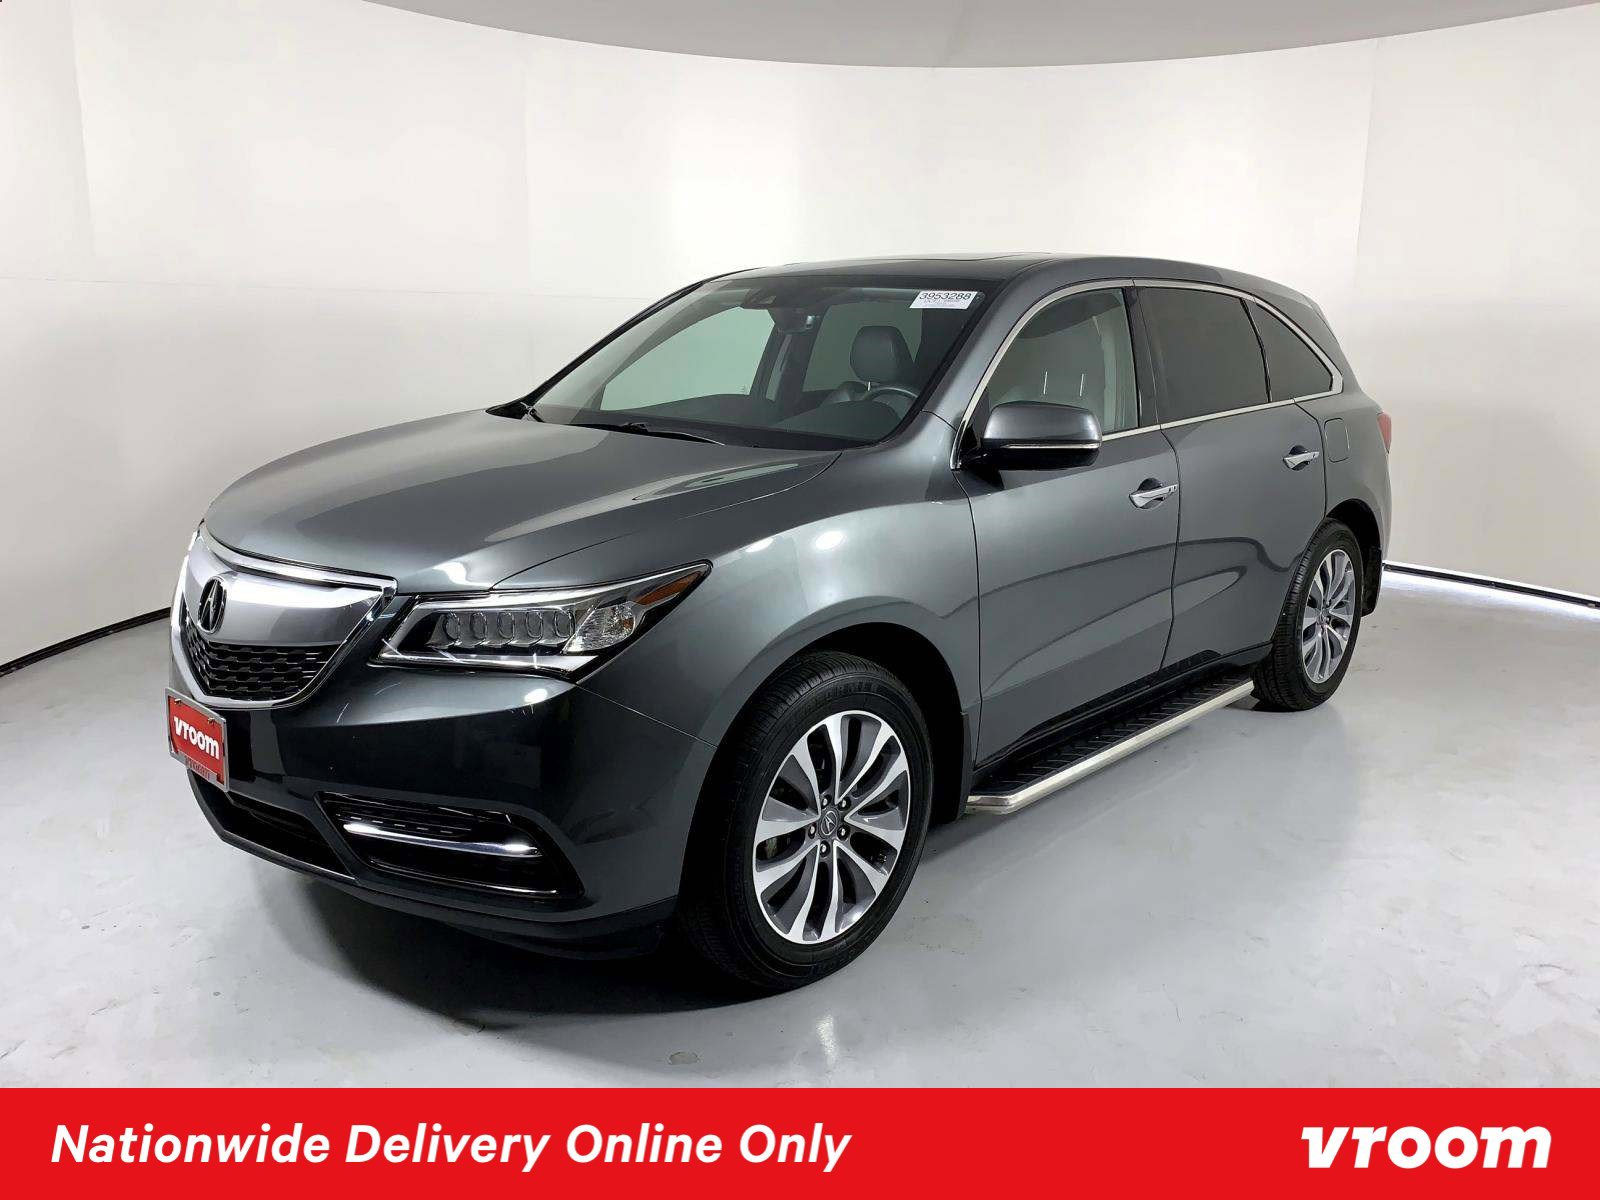 2016 Acura MDX FWD w/ Technology Package image